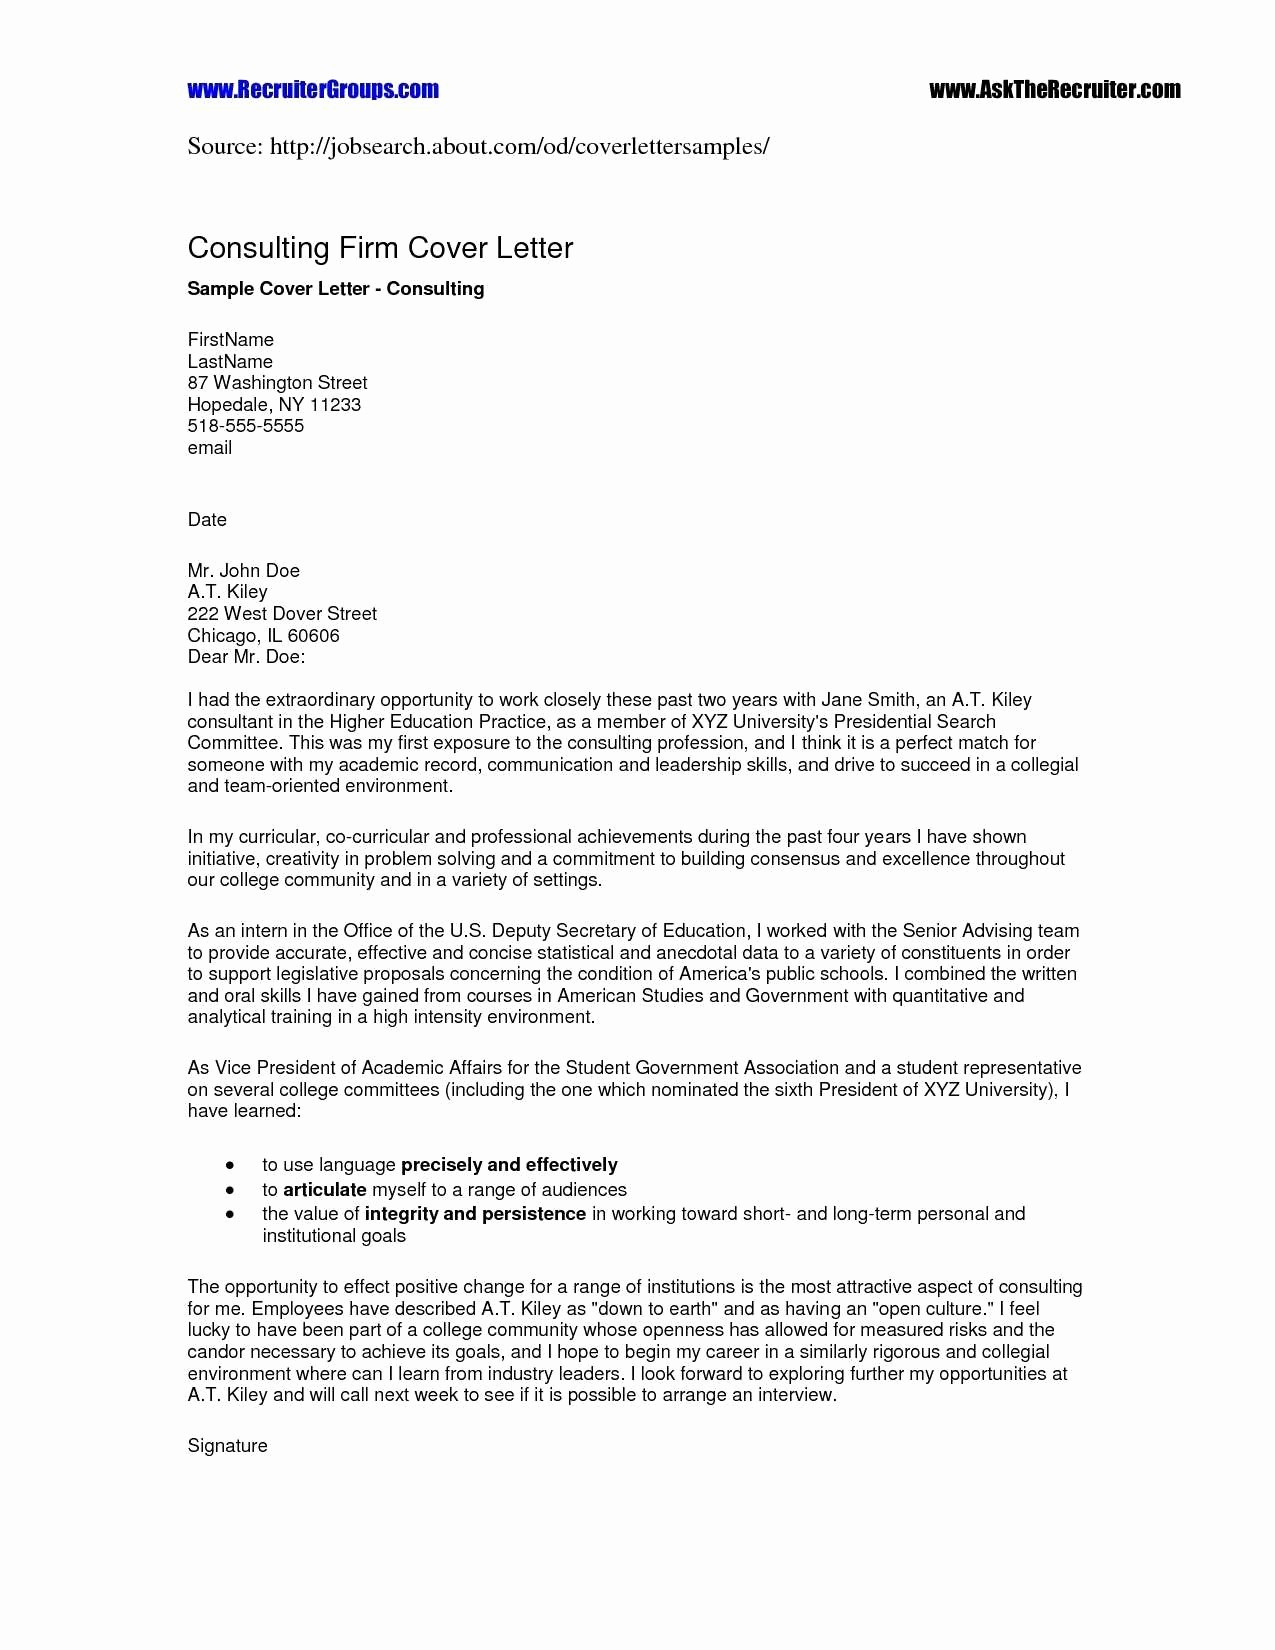 Letter Of Agreement Template - Business Loan Agreement Template Save Msp Contract Template Elegant